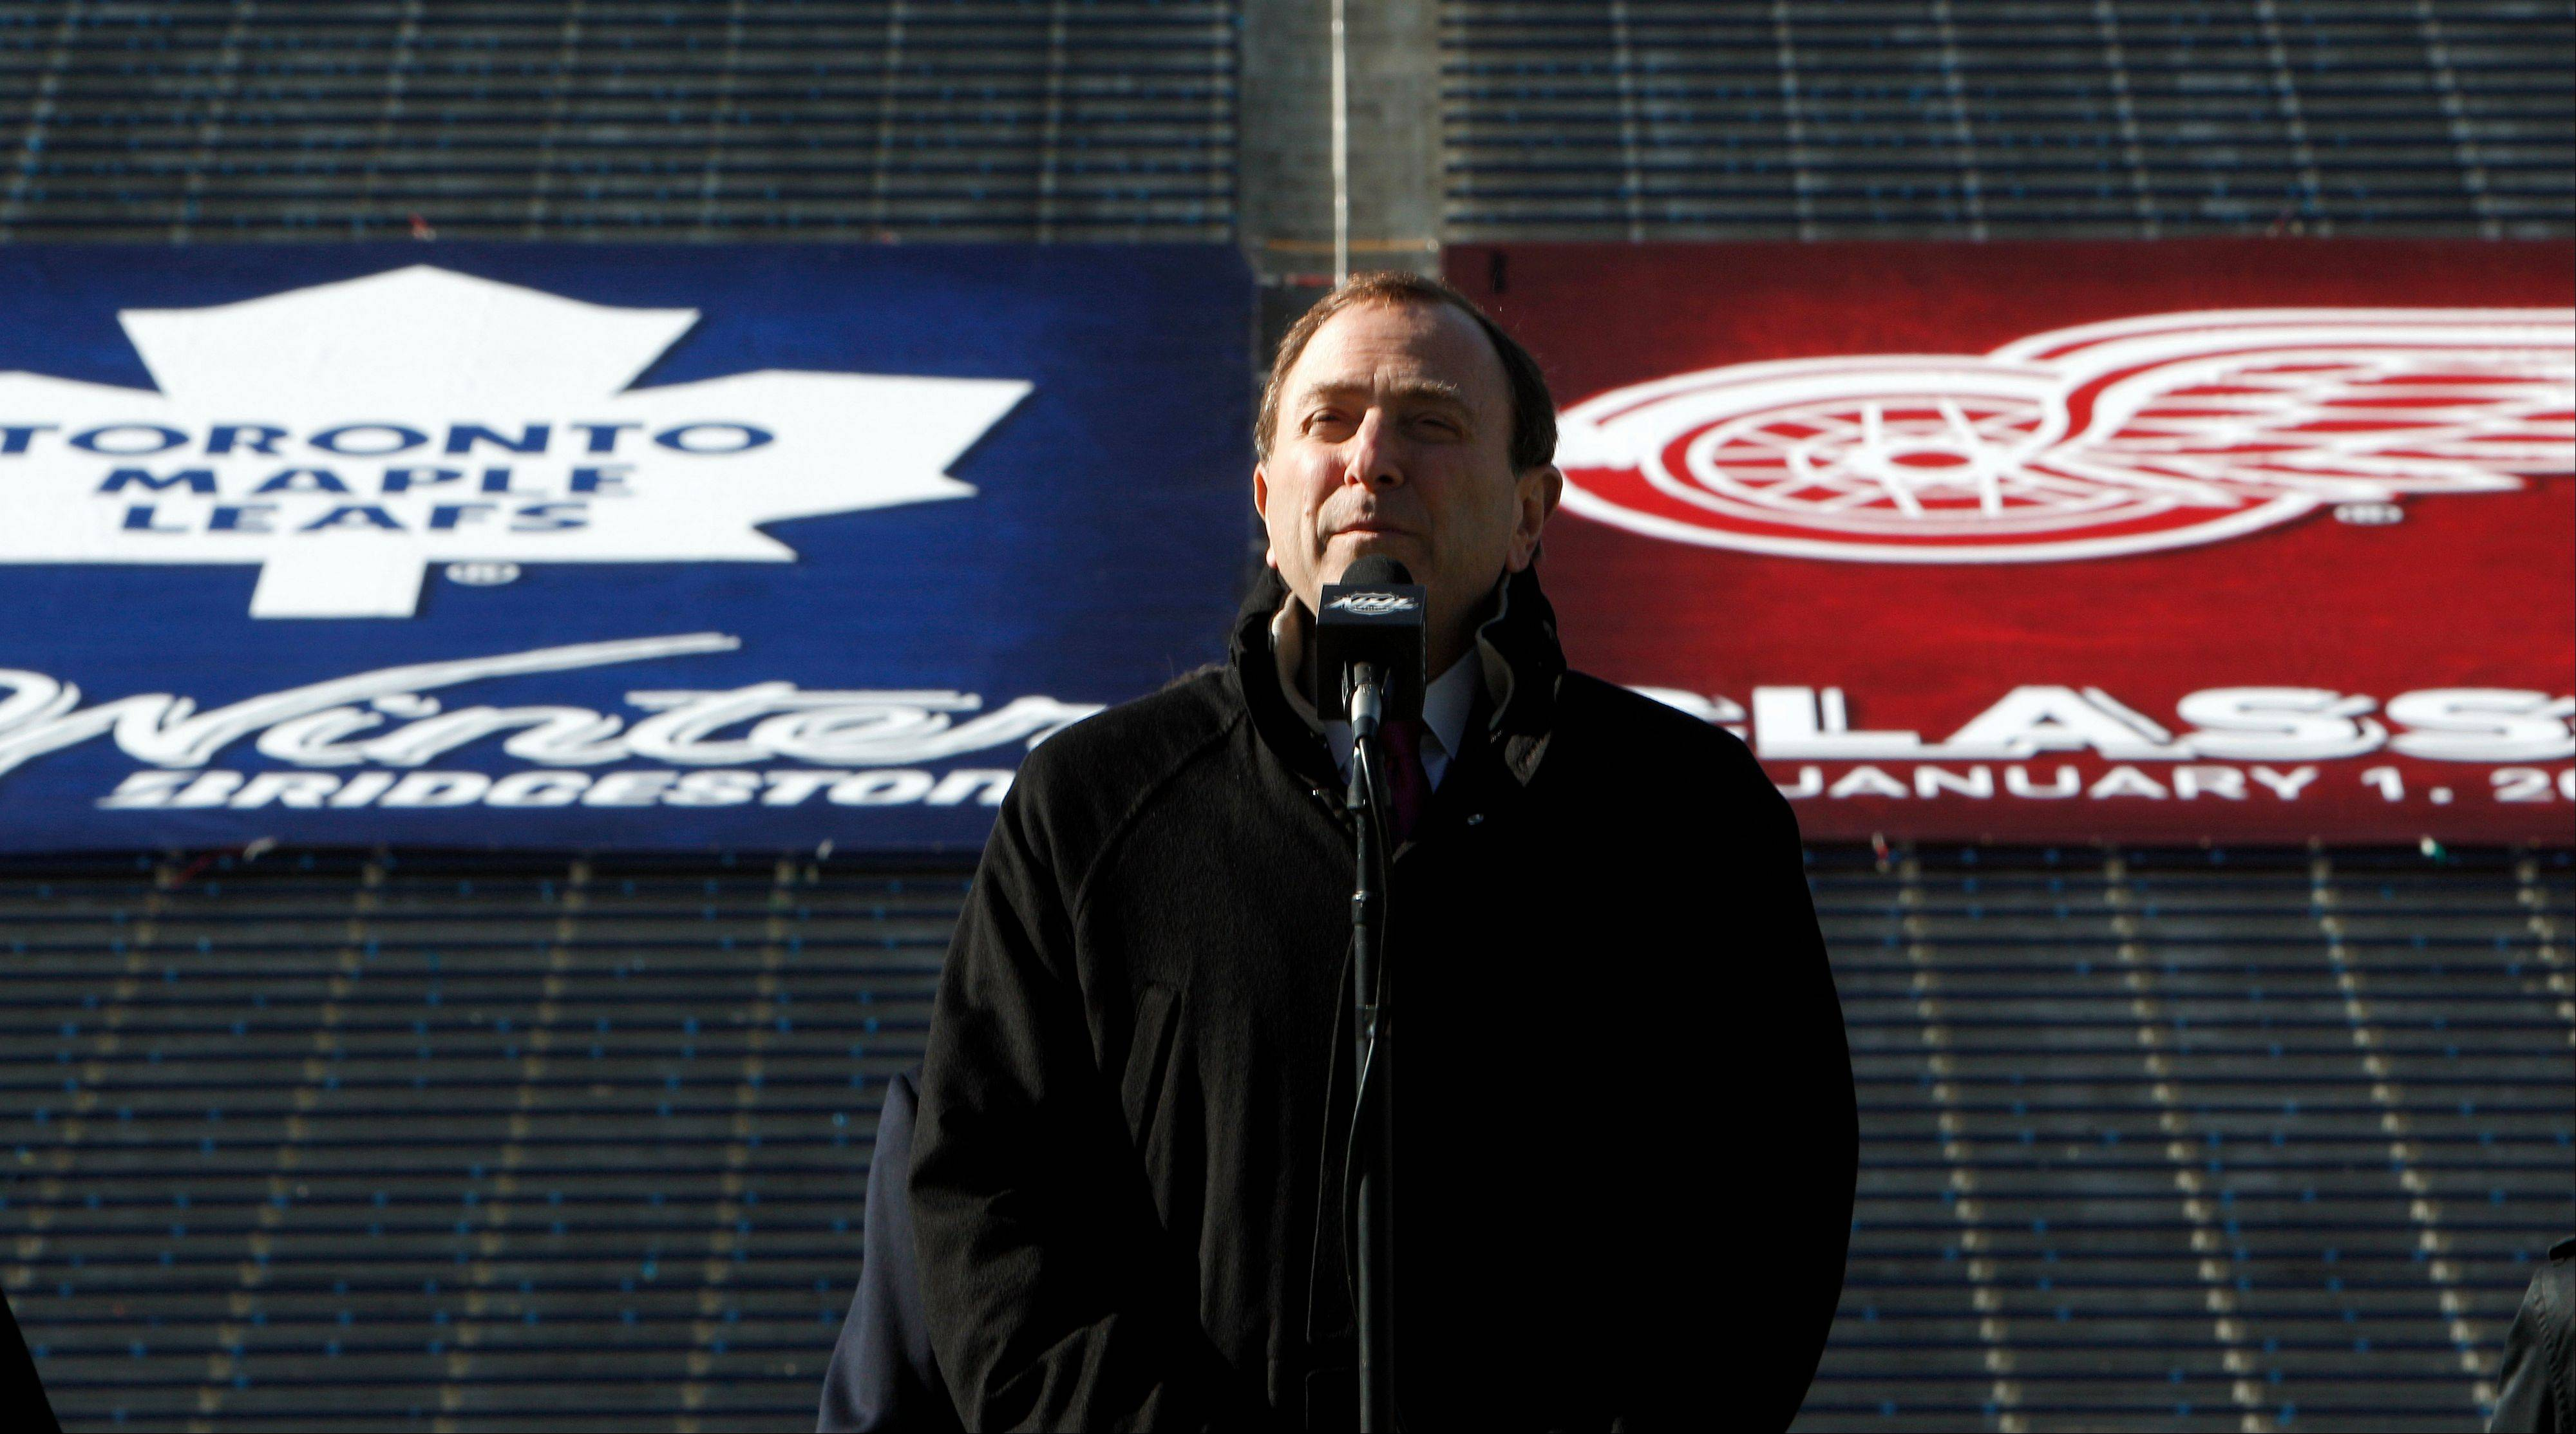 The NHL has canceled the 2013 Winter Classic at Michigan Stadium. The signature event between the Detroit Red Wings and Toronto Maple Leafs, is the latest casualty from the labor dispute that has put the season on hold, a person familiar with the situation told The Associated Press on Friday.